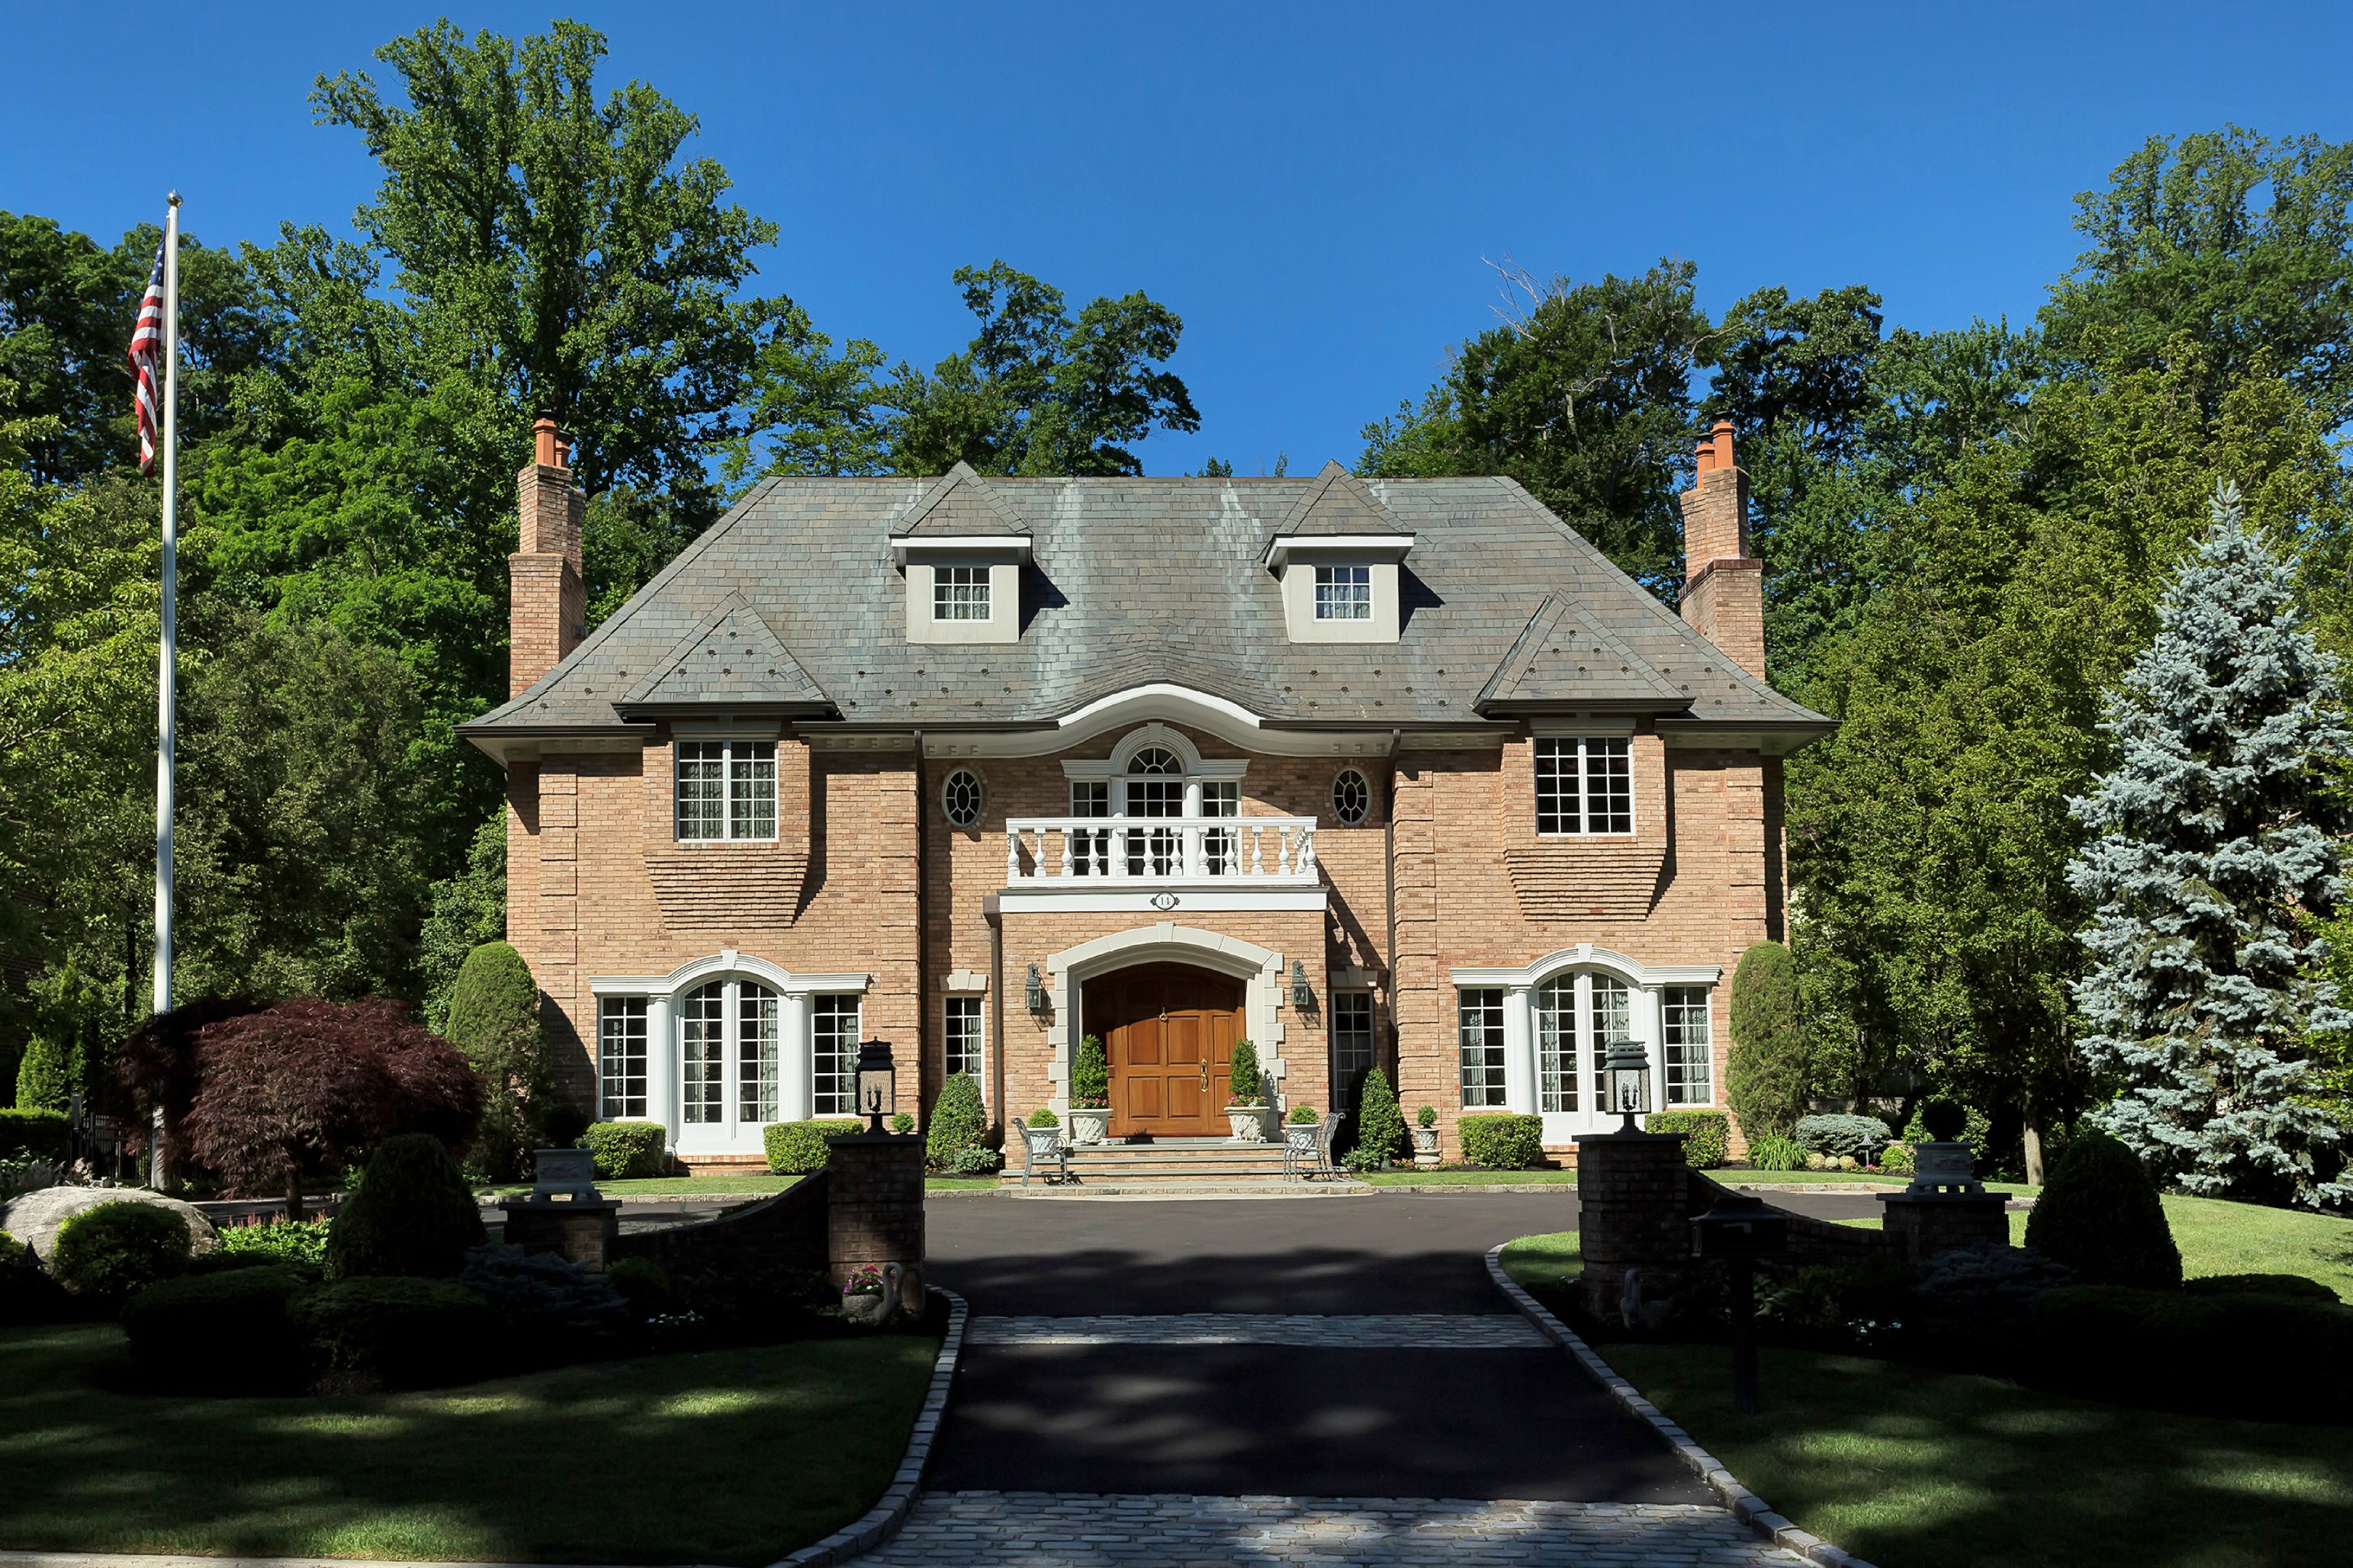 Single Family Home for Sale at Colonial 14 Walter Ln Manhasset, New York, 11030 United States